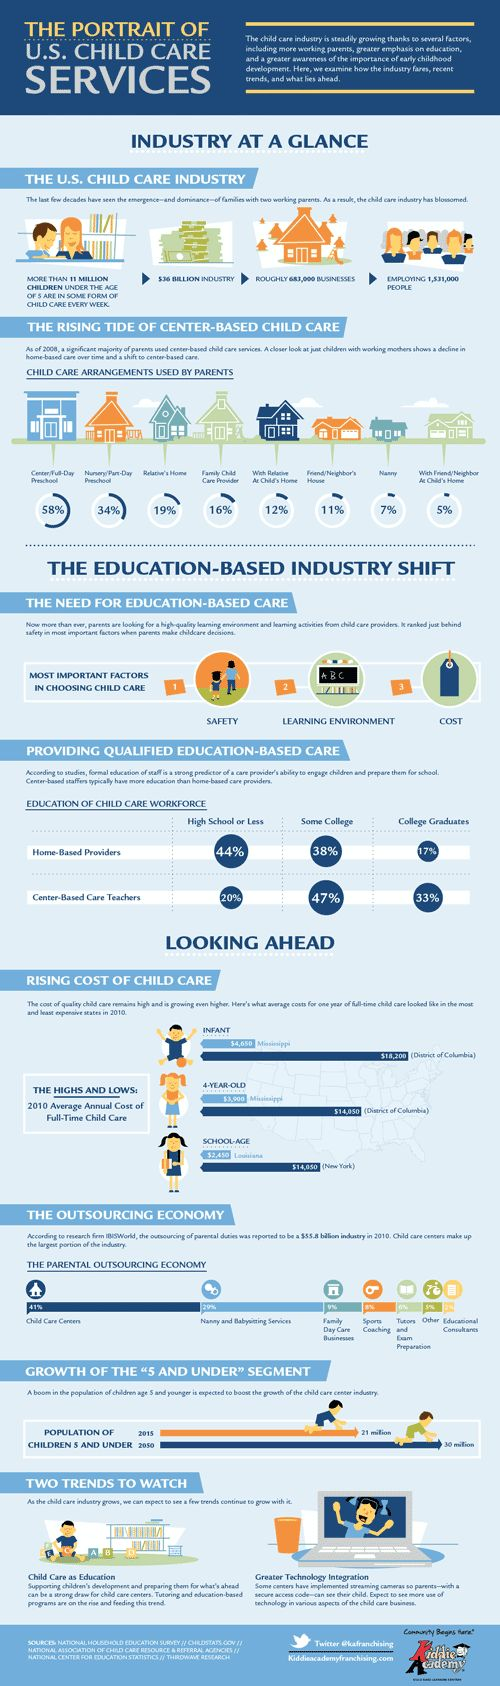 The Portrait of U.S. Child Care Services Infographic